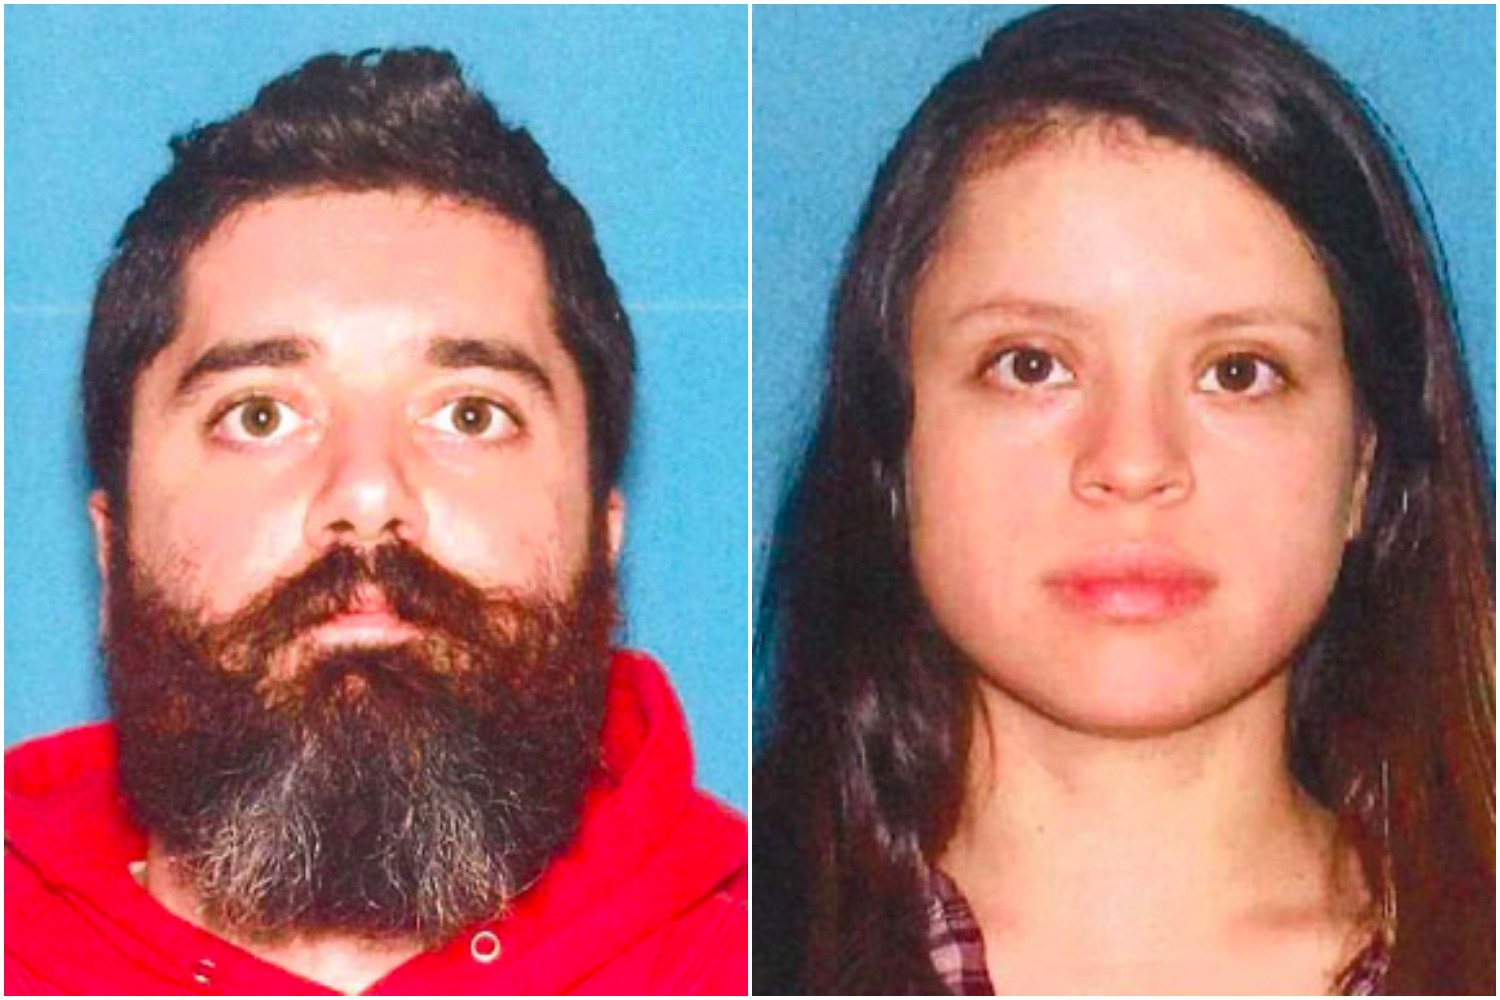 Patrick Fasano, 31, and Maria Fasano, 27, both of Brick. (Photos: OCPO)